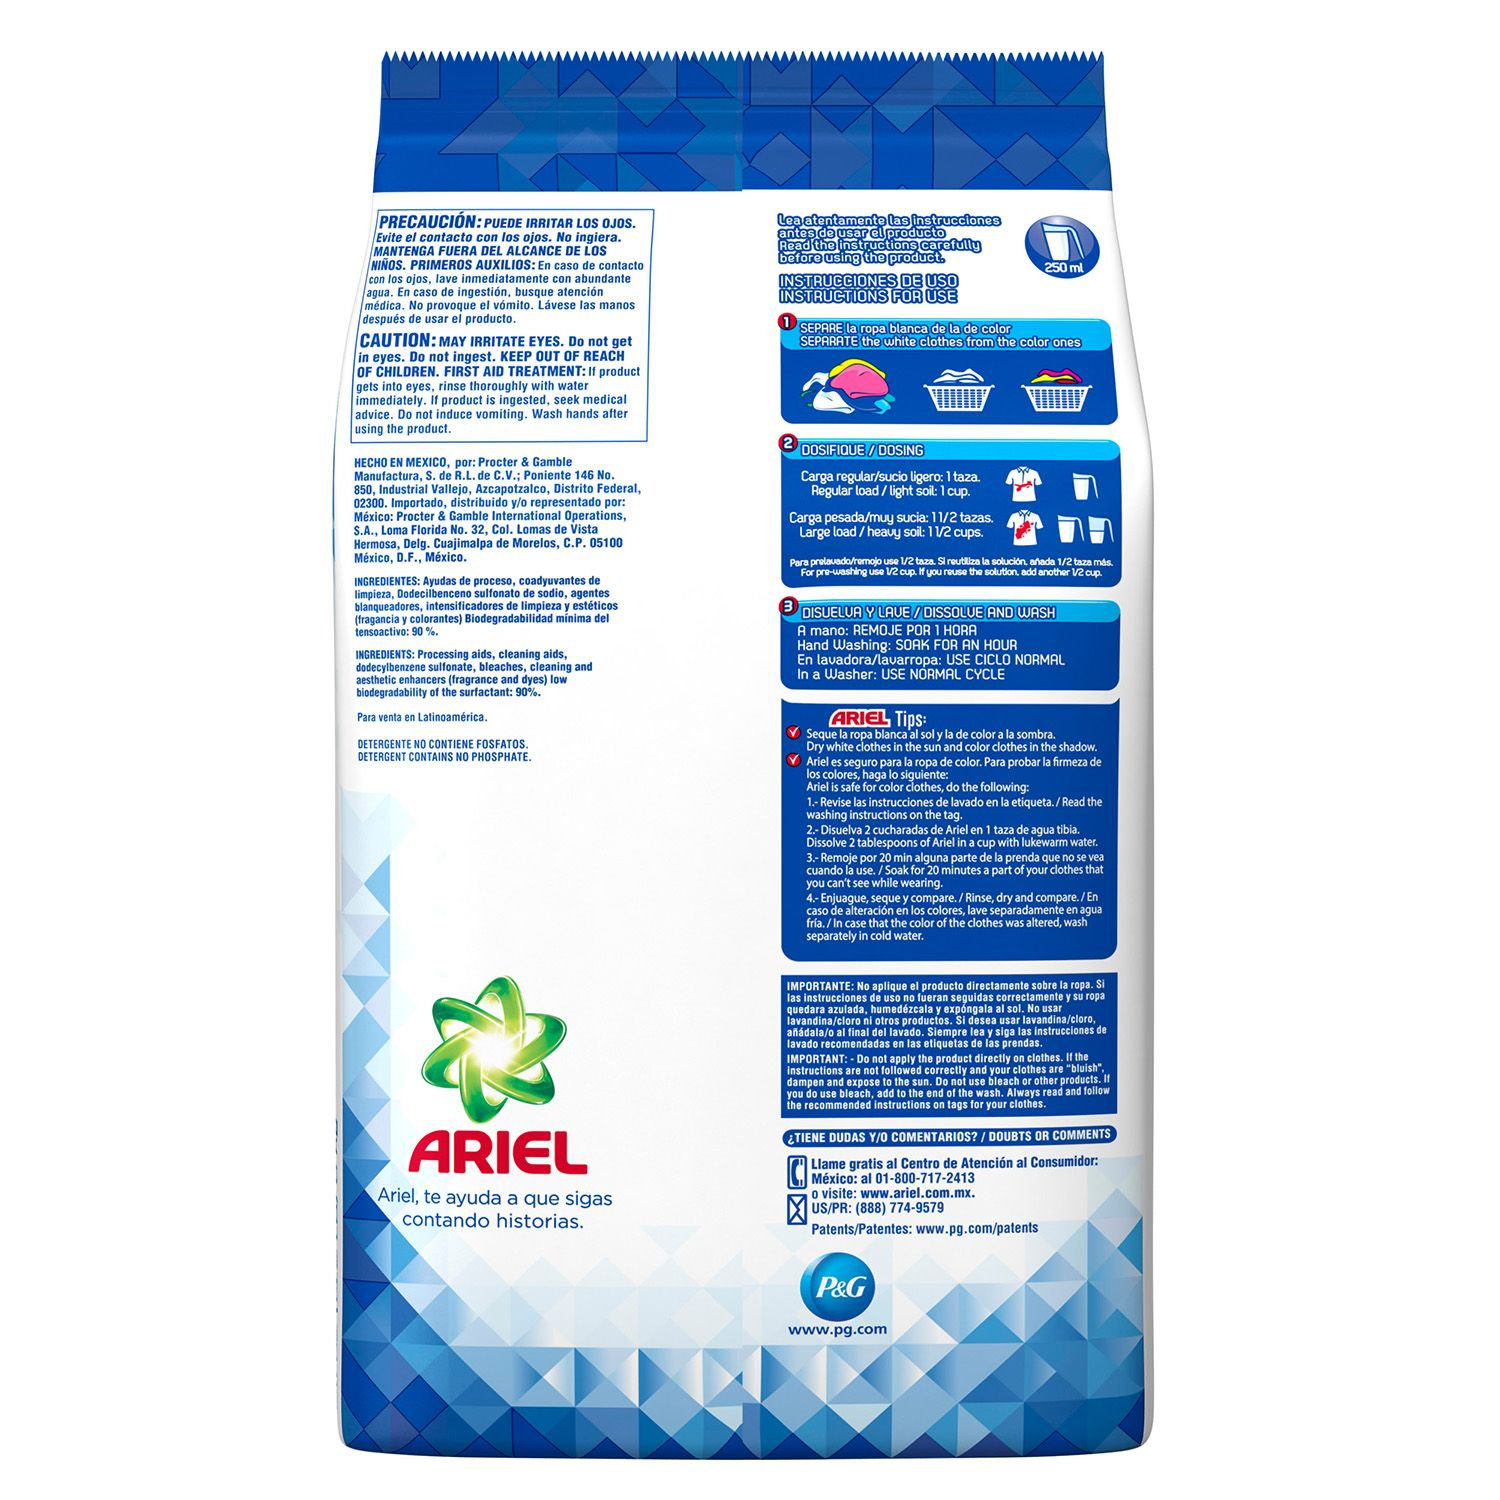 Ariel Powder Laundry Detergent, Original Scent 211 FL OZ | (42 LOADS)